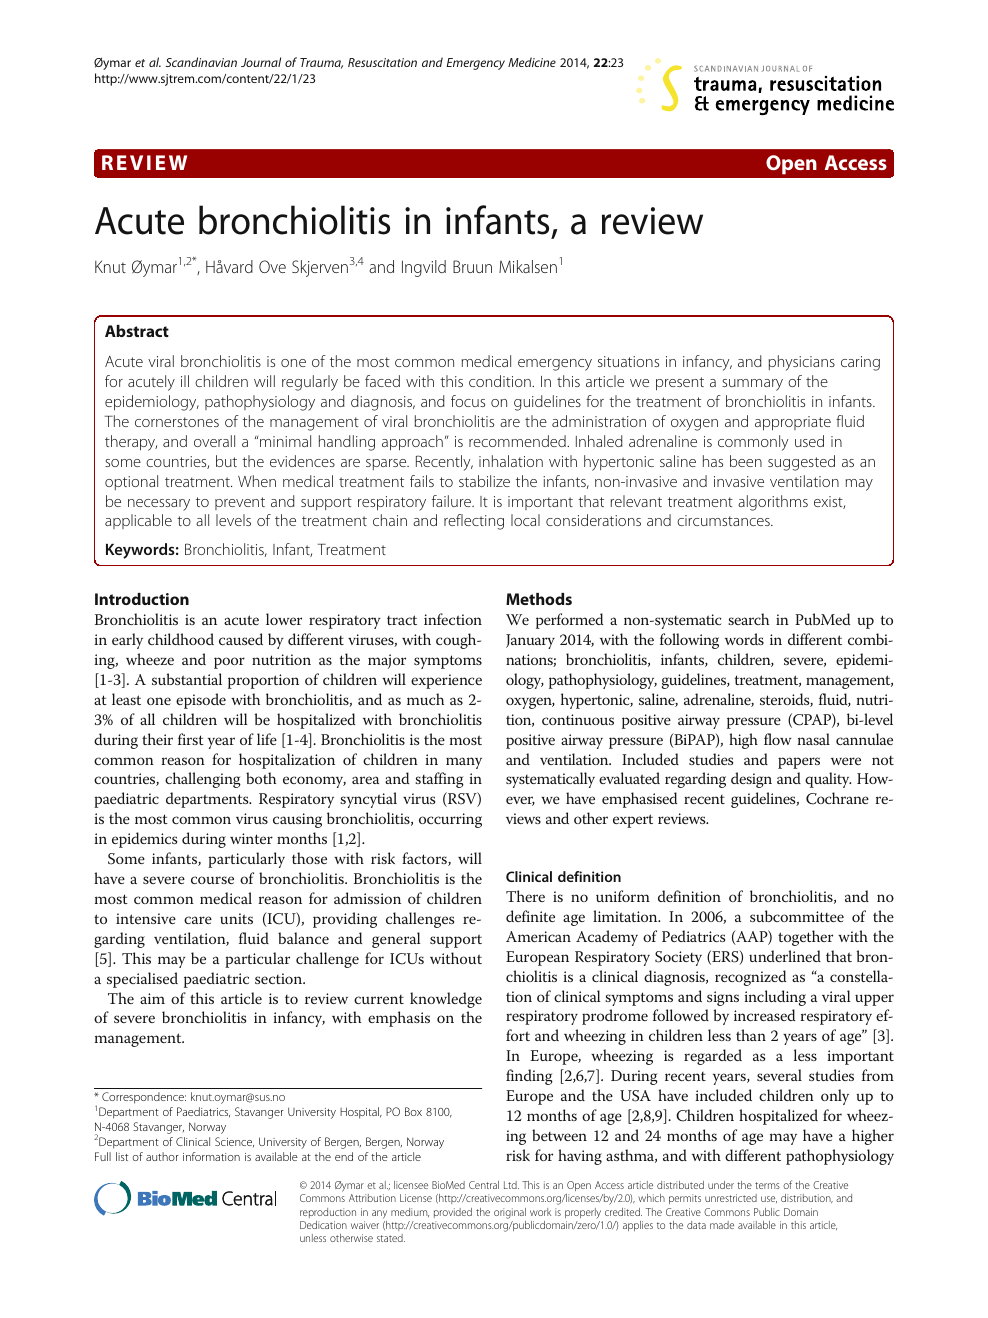 Acute bronchiolitis in infants, a review – topic of research